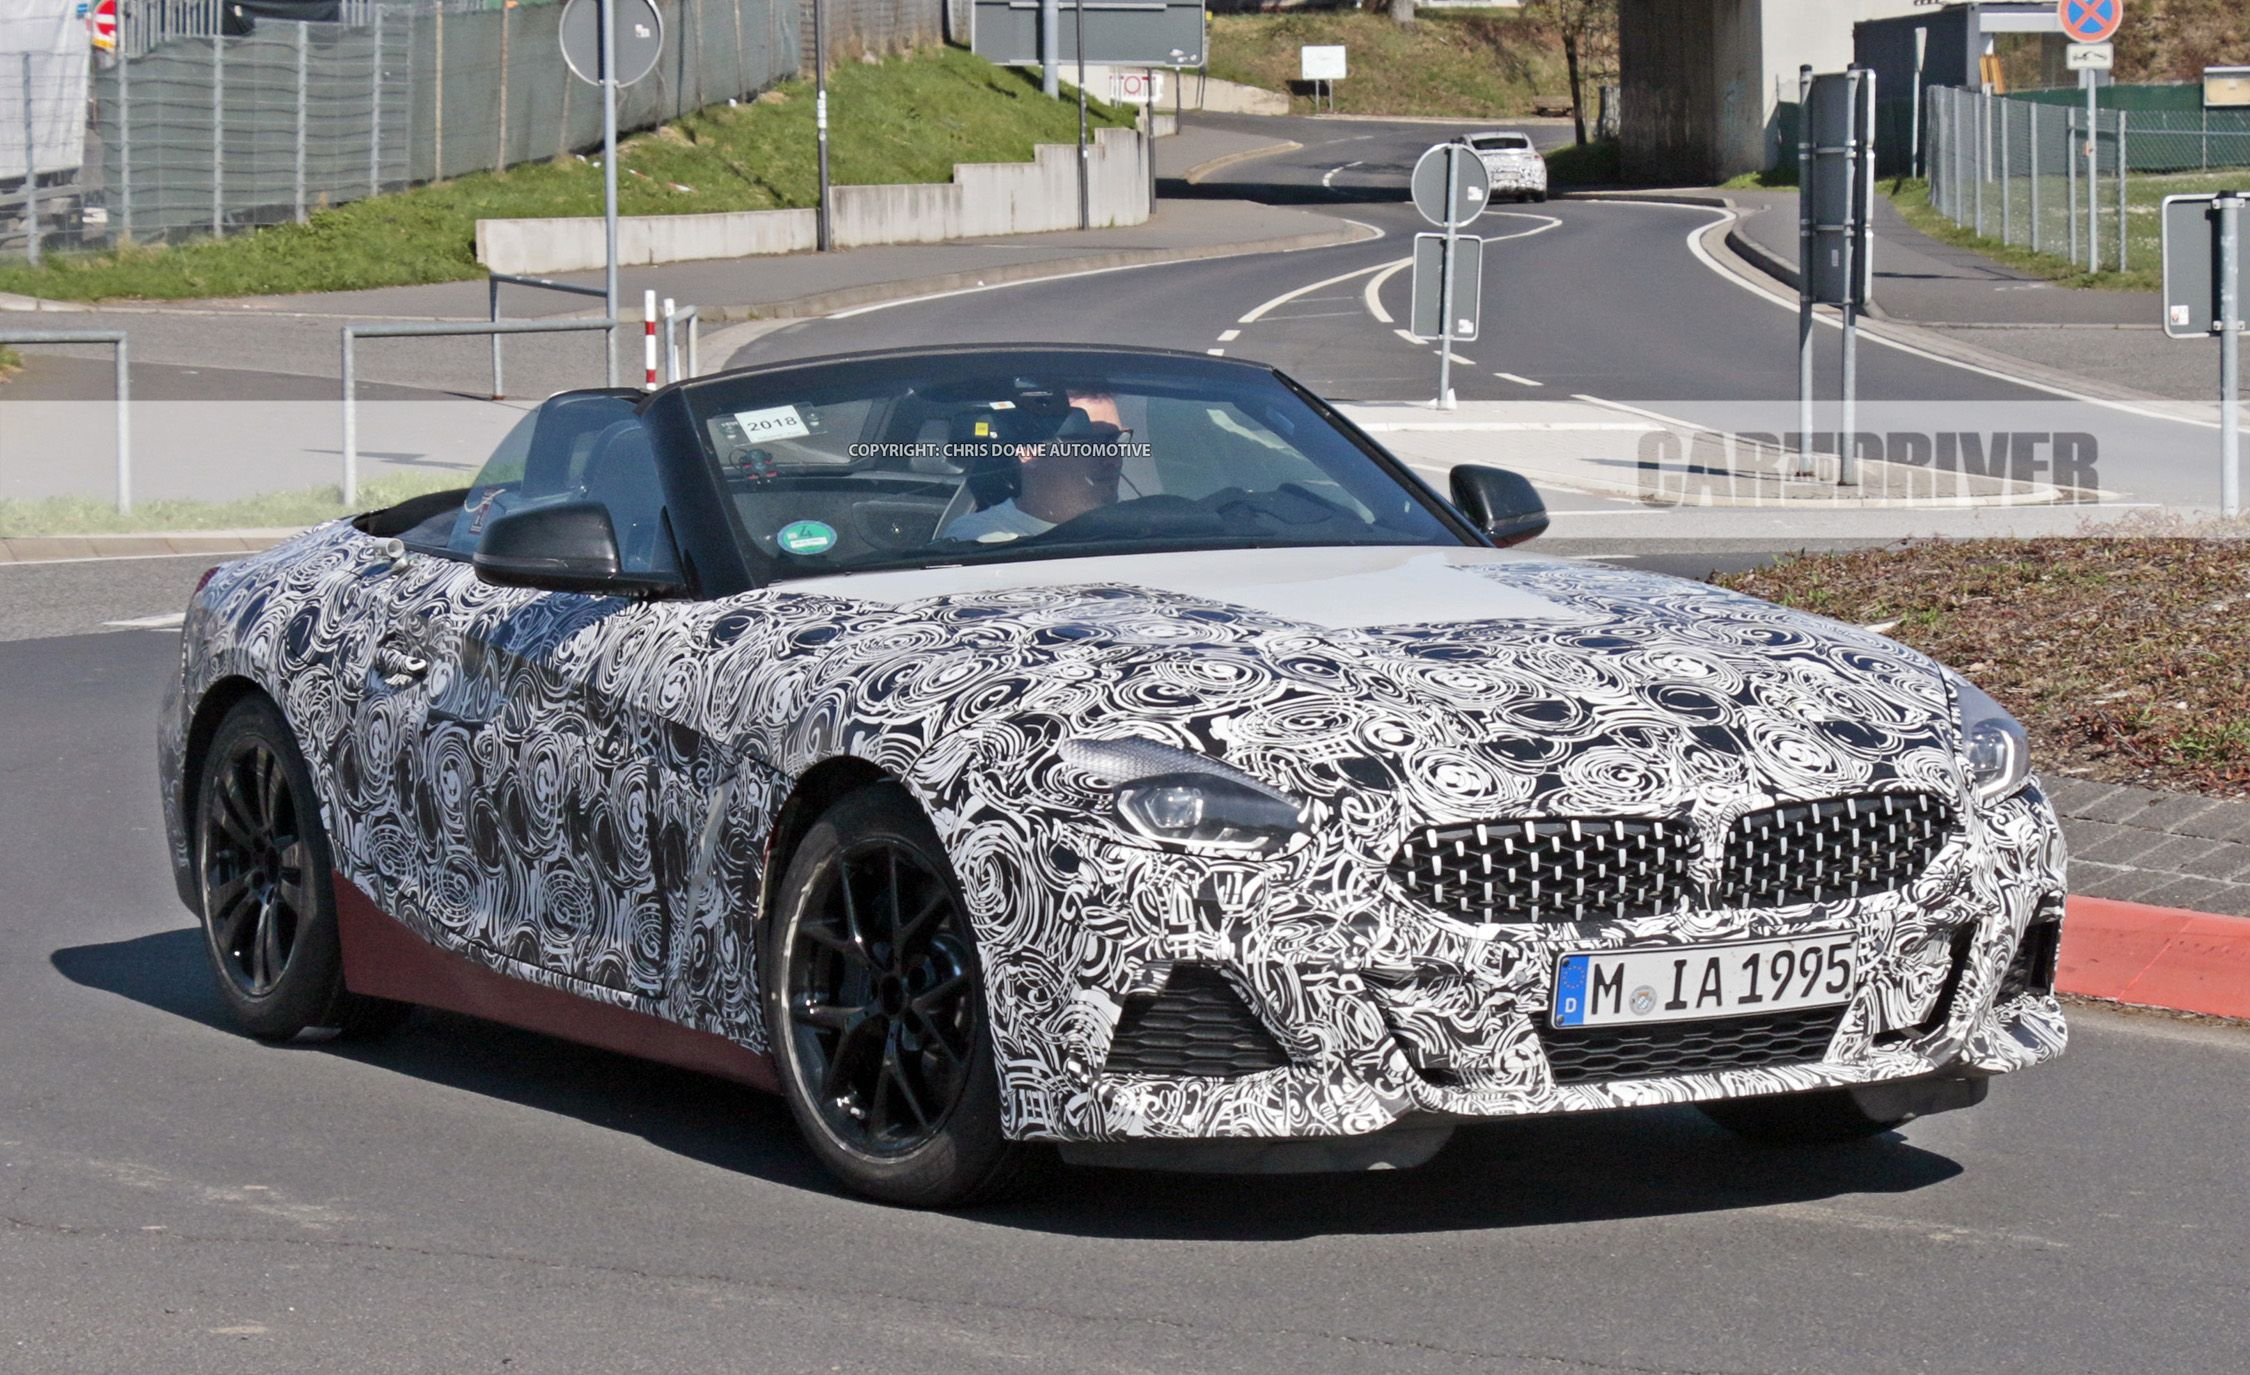 2019 Bmw Z4 Roadster Interior Revealed In New Spy Images News Car And Driver